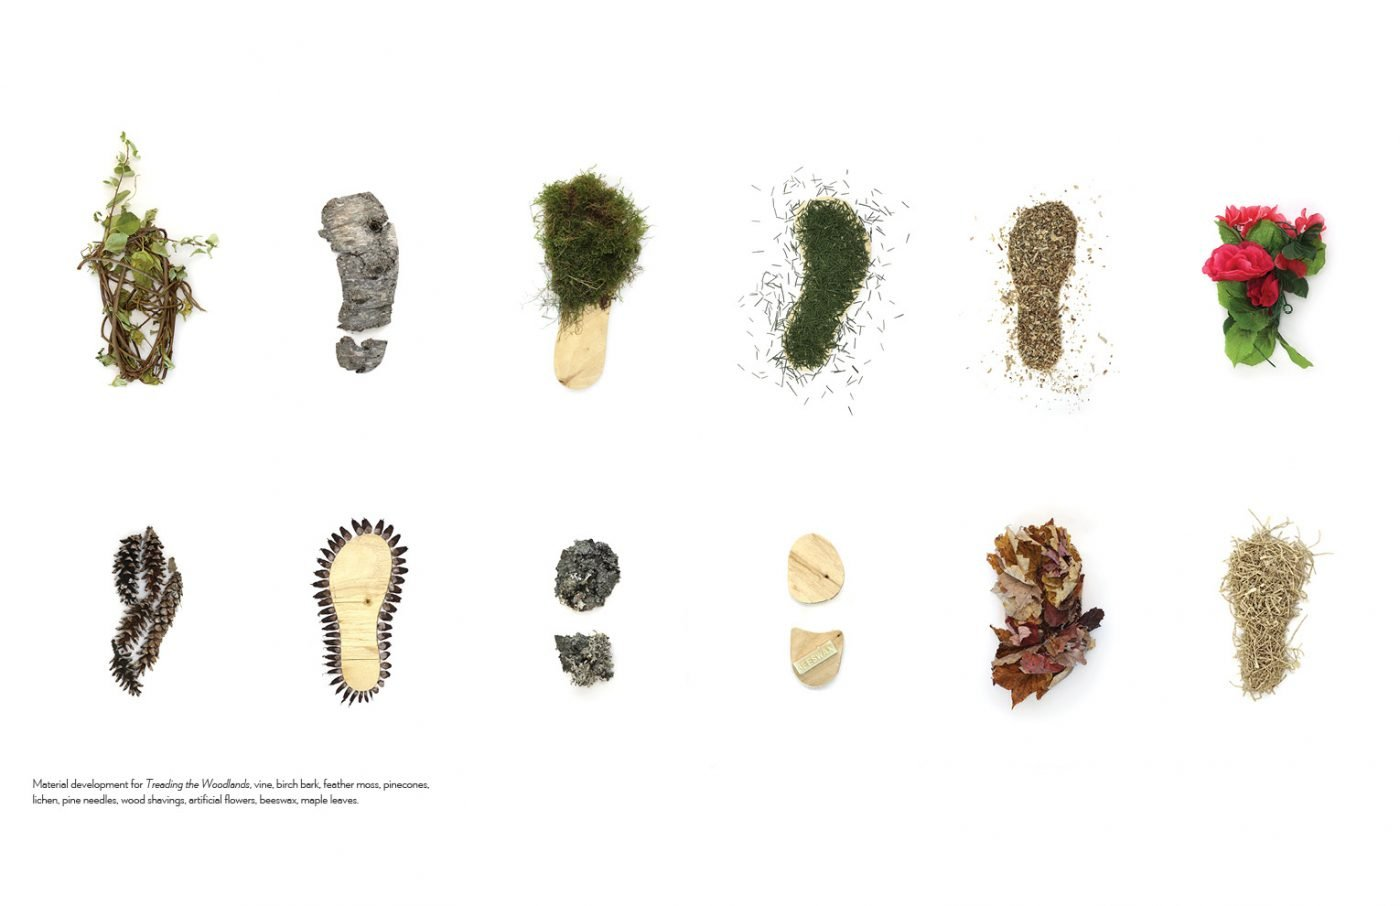 Two rows of six material experiments and combinations, each in the shape of a shoe's sole